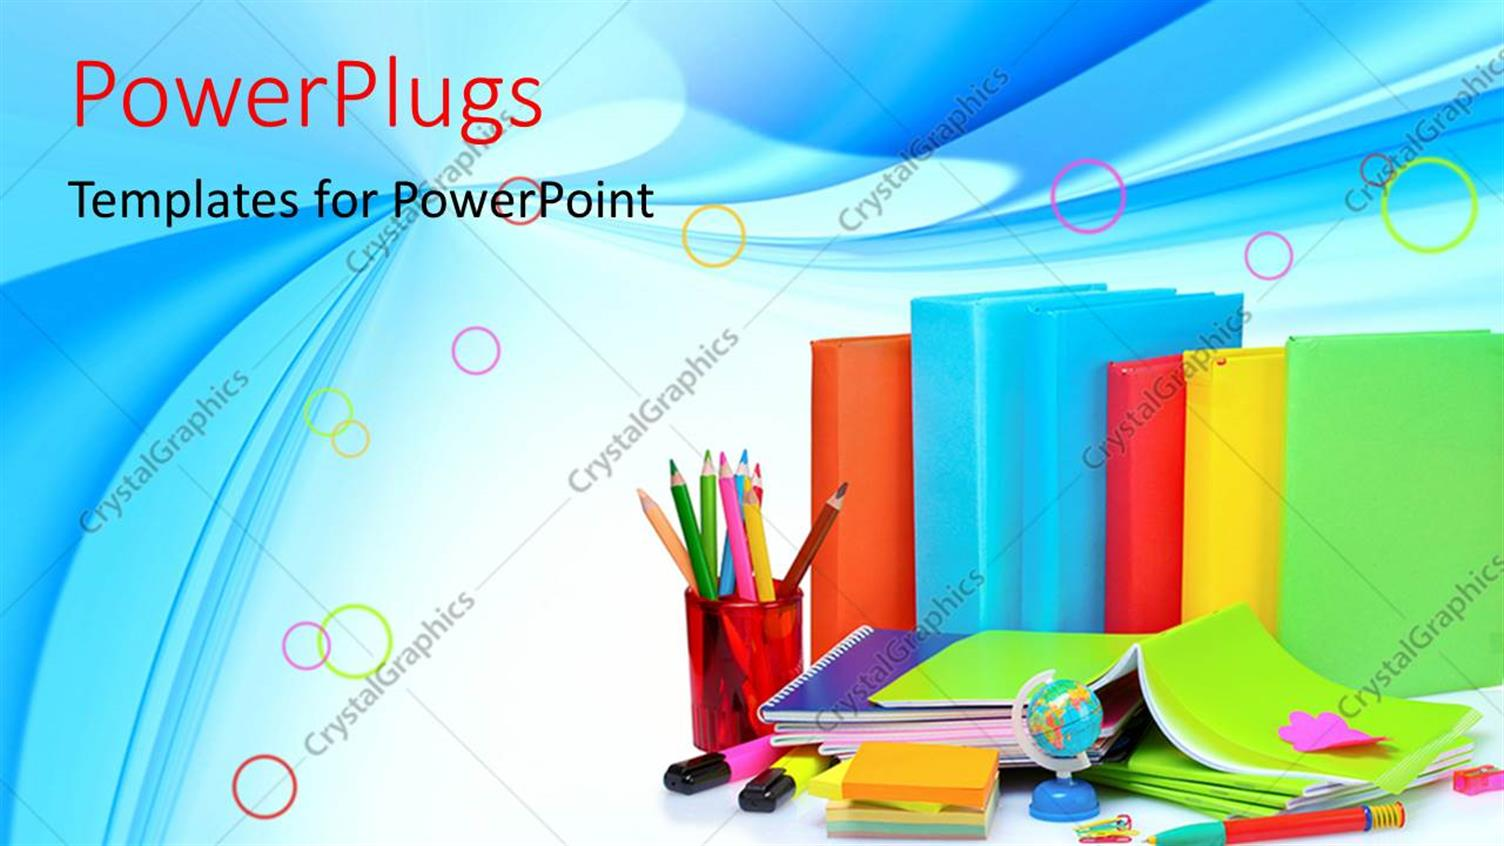 PowerPoint Template Displaying Learning Depiction with Colorful Books and Learning Materials on Blue Background